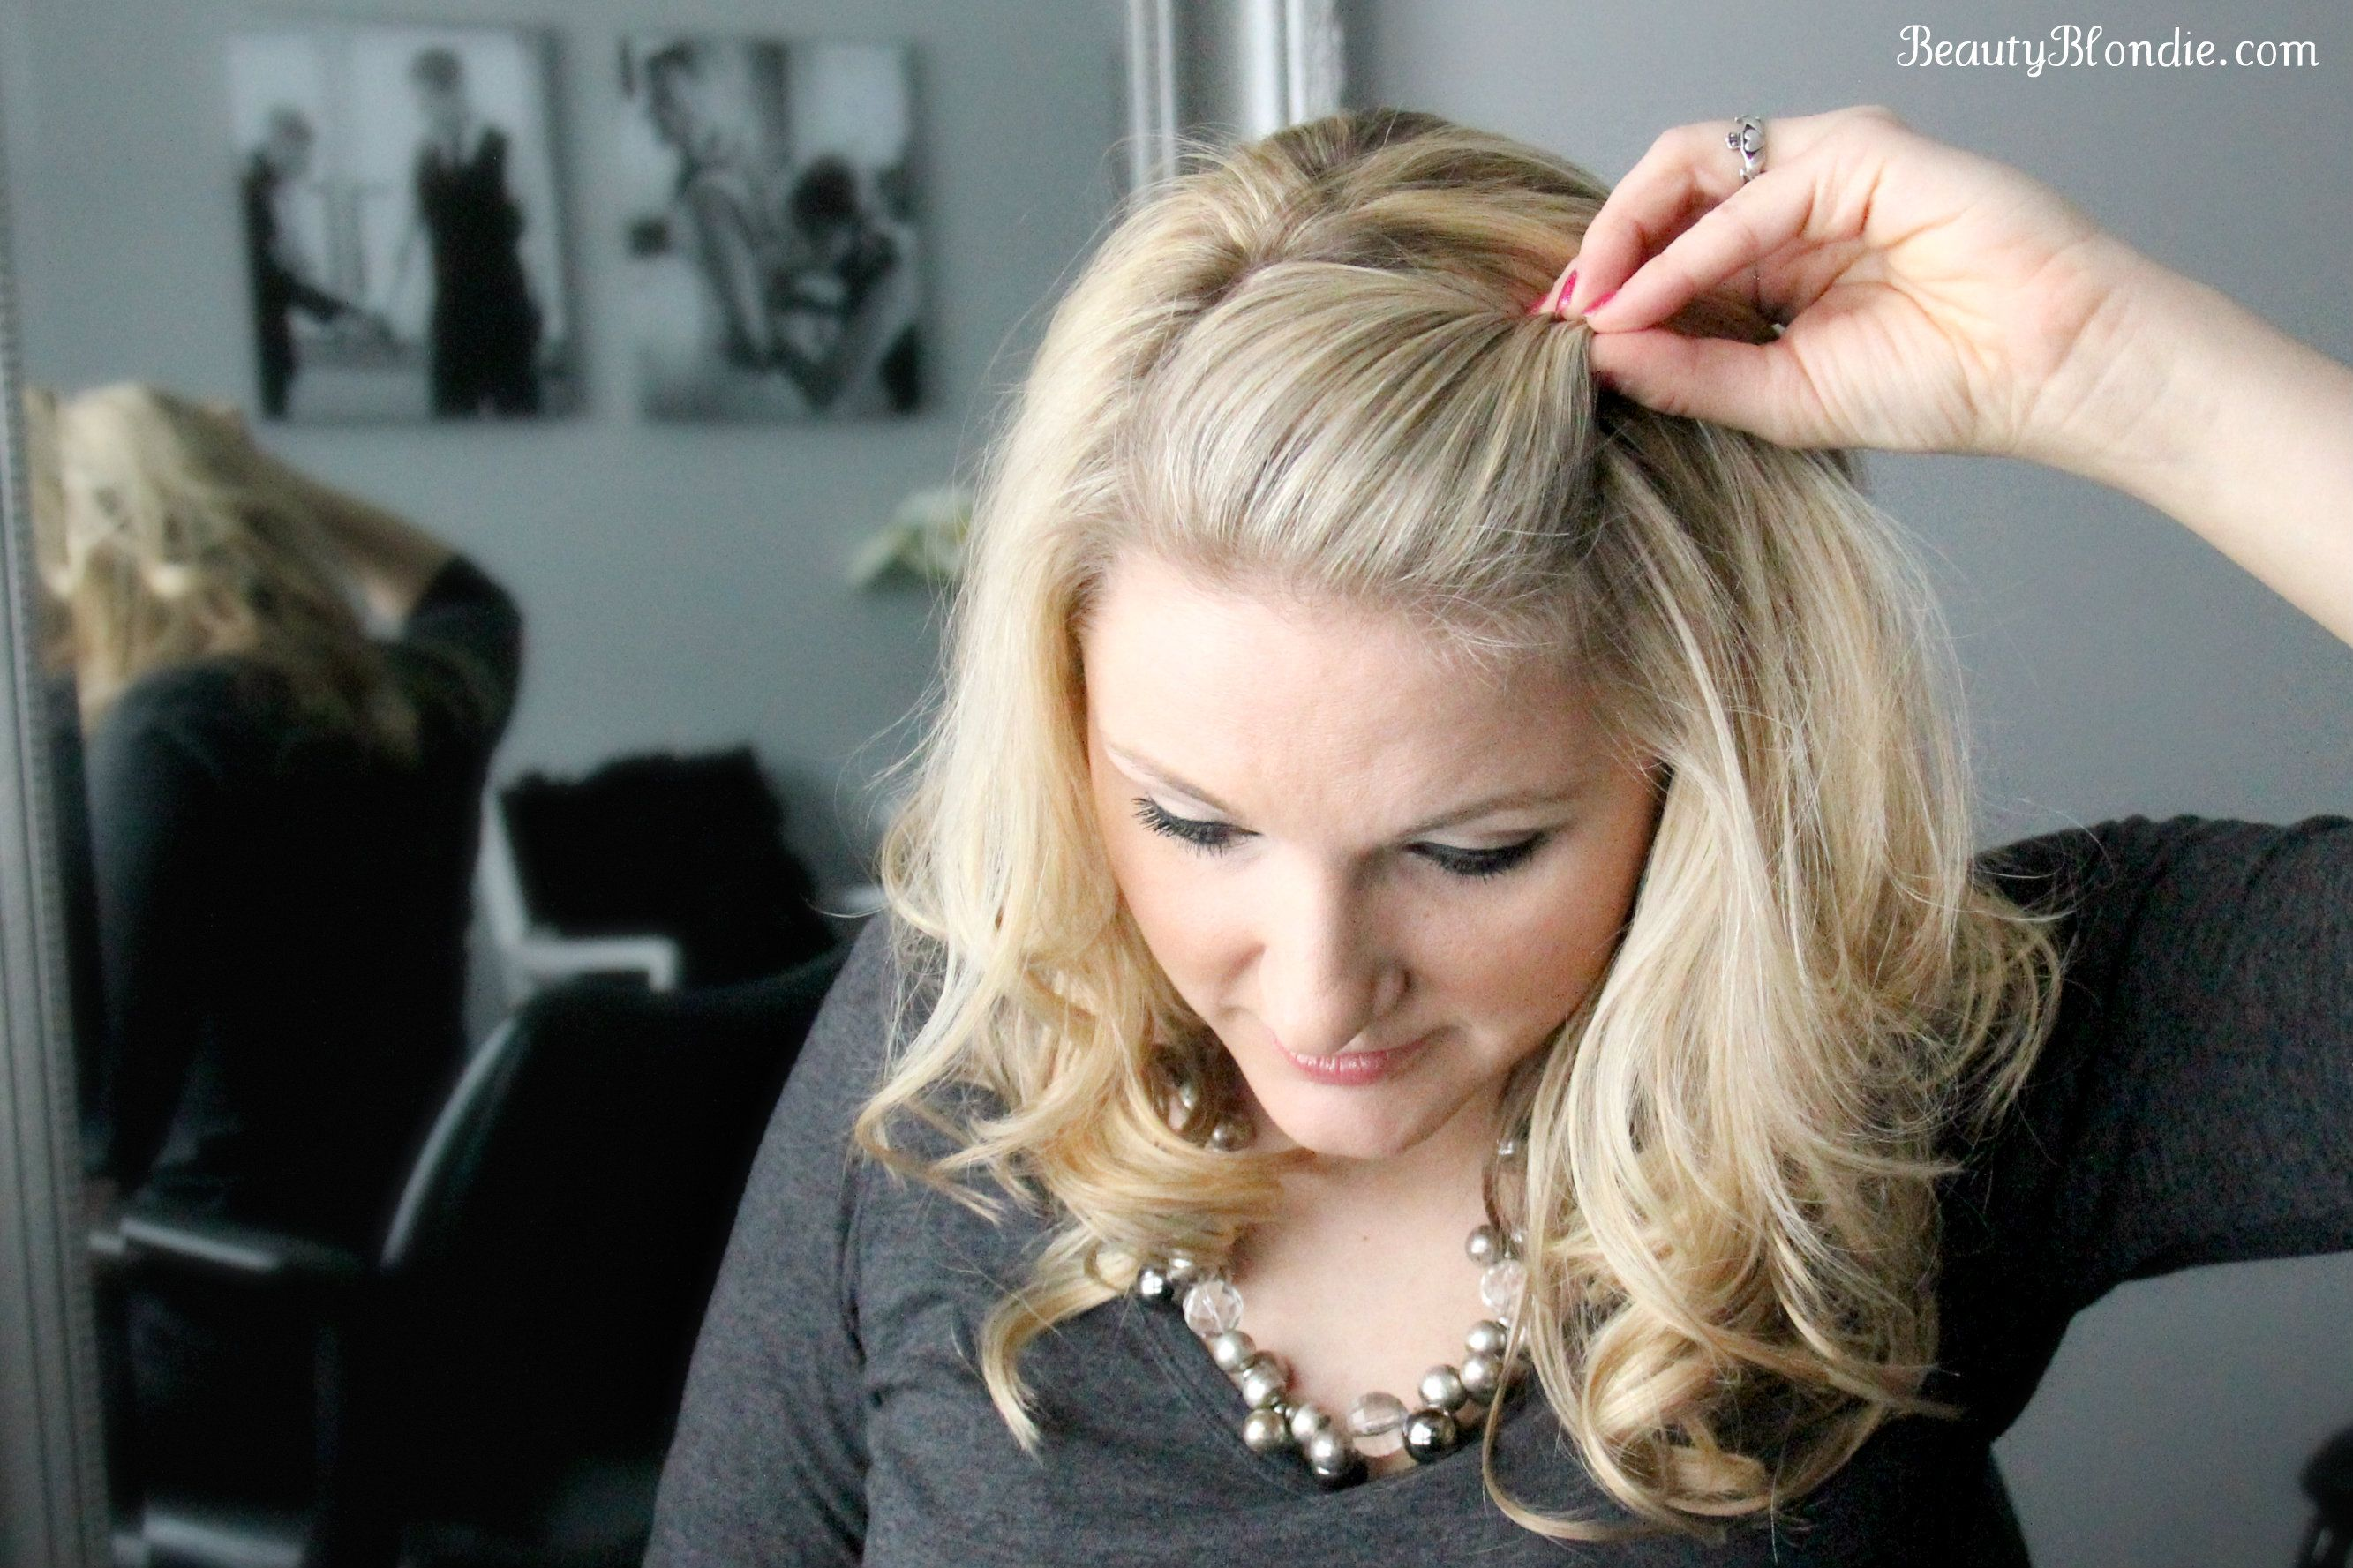 Pulled Back Hair Styles: With The Opened End Of The Bobby Pin Facing The Front Of